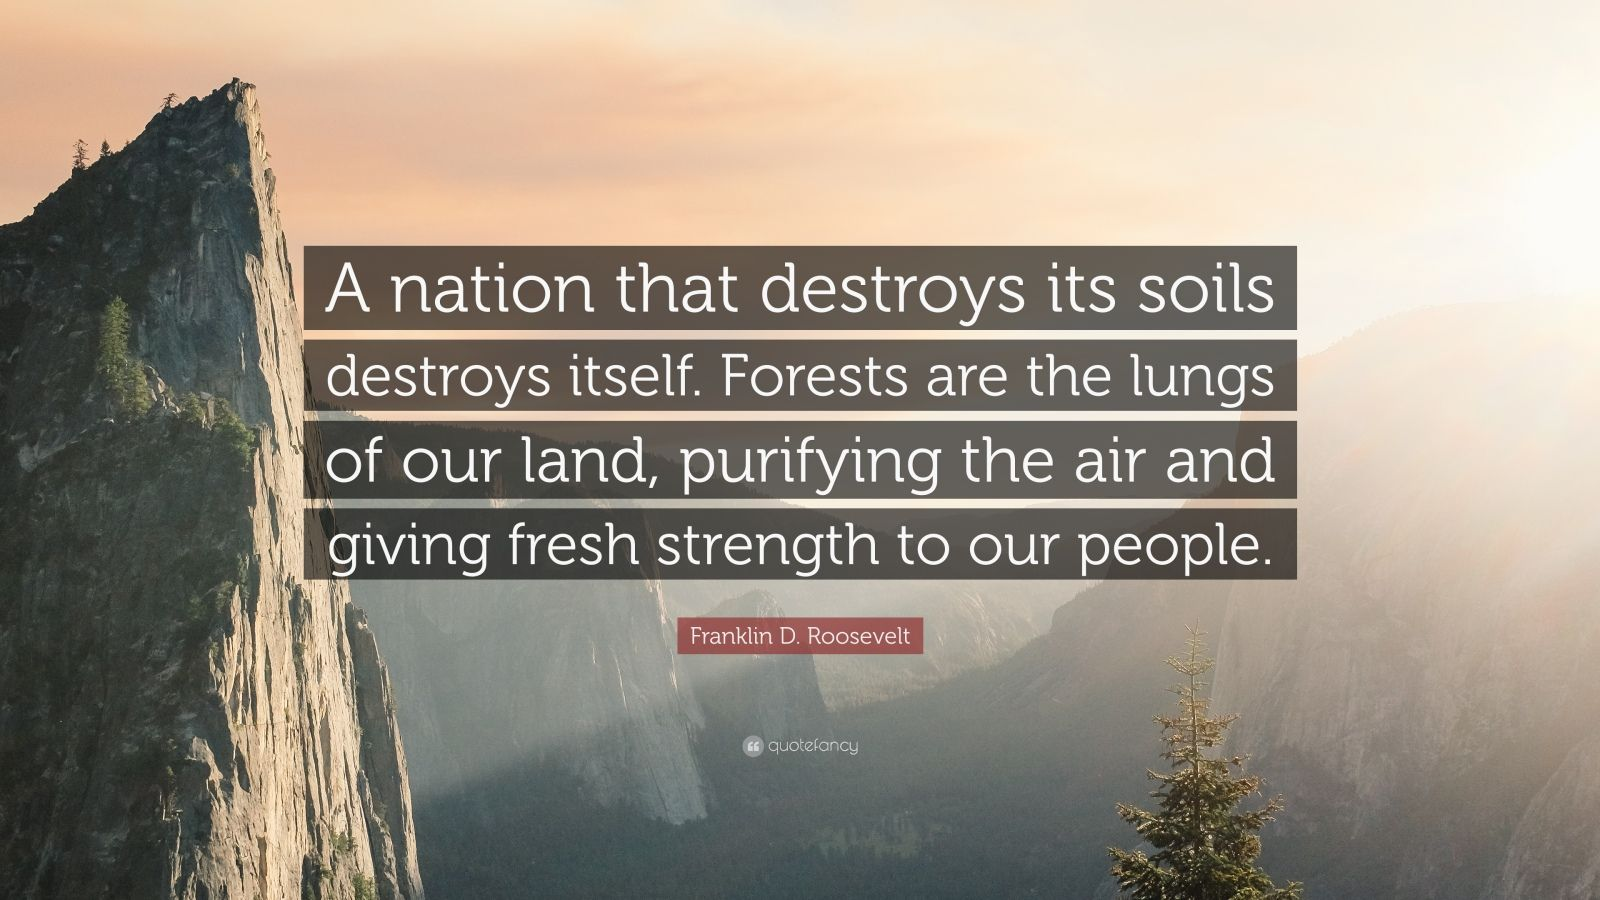 """Franklin D. Roosevelt Quote: """"A nation that destroys its soils destroys itself. Forests are the lungs of our land, purifying the air and giving fresh strength to our people."""""""